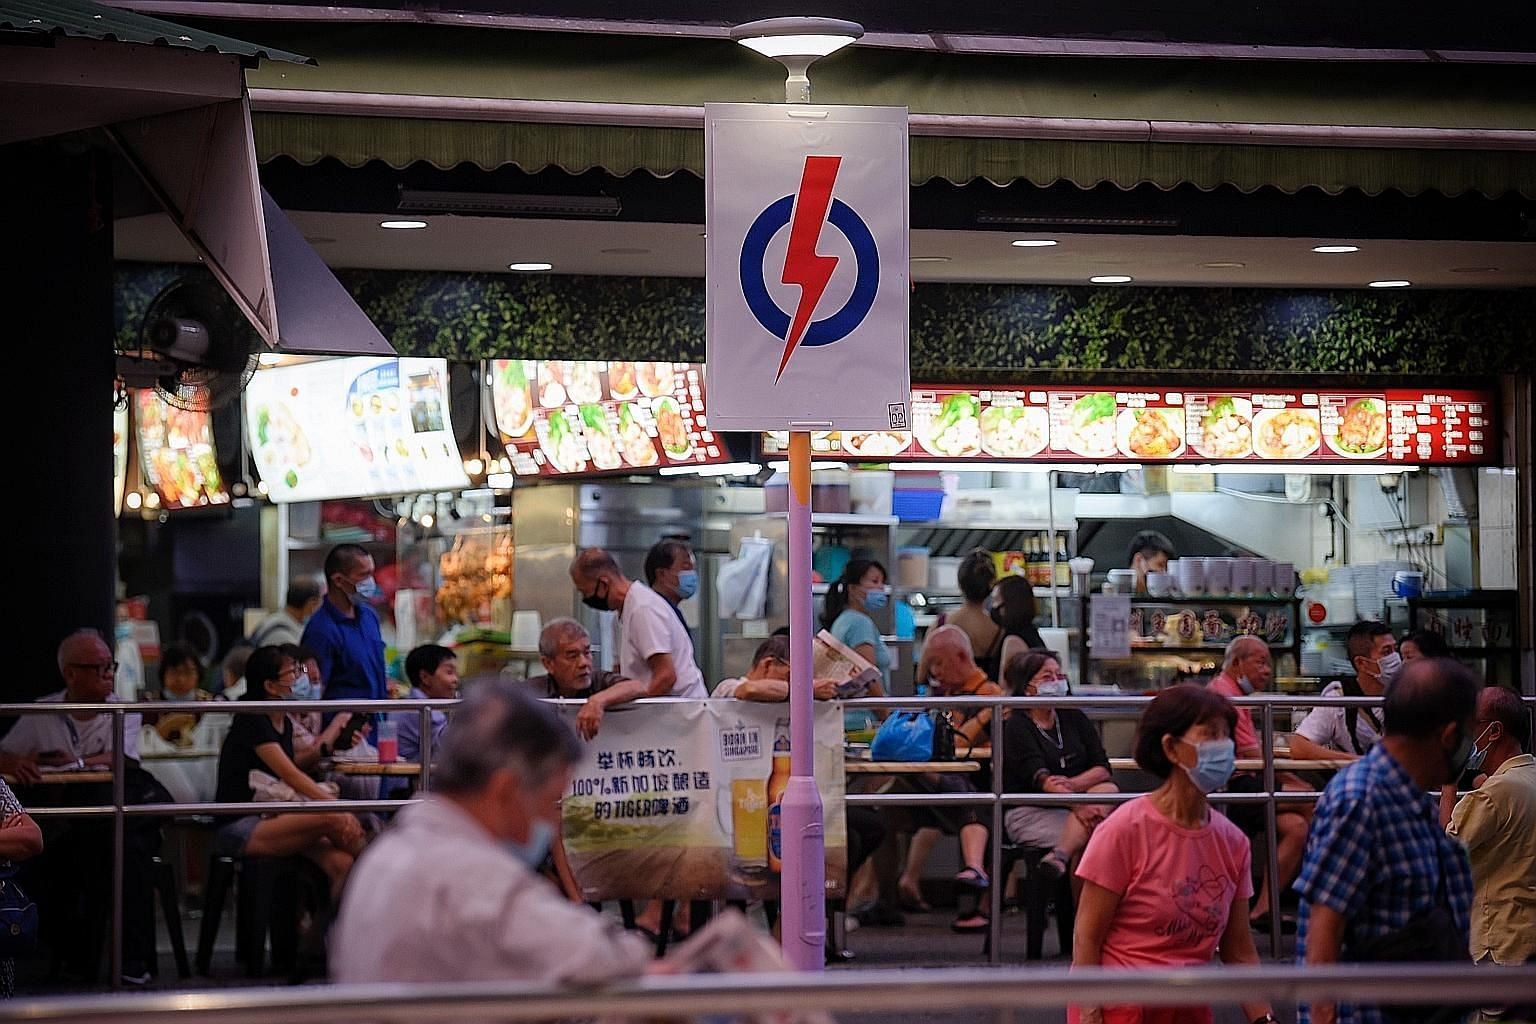 A PAP logo outside a coffee shop at Ang Mo Kio Town Centre. Deputy Prime Minister Heng Swee Keat said that the ruling party is seeking a clear mandate to lead Singapore through the storms ahead. ST PHOTO: MARK CHEONG